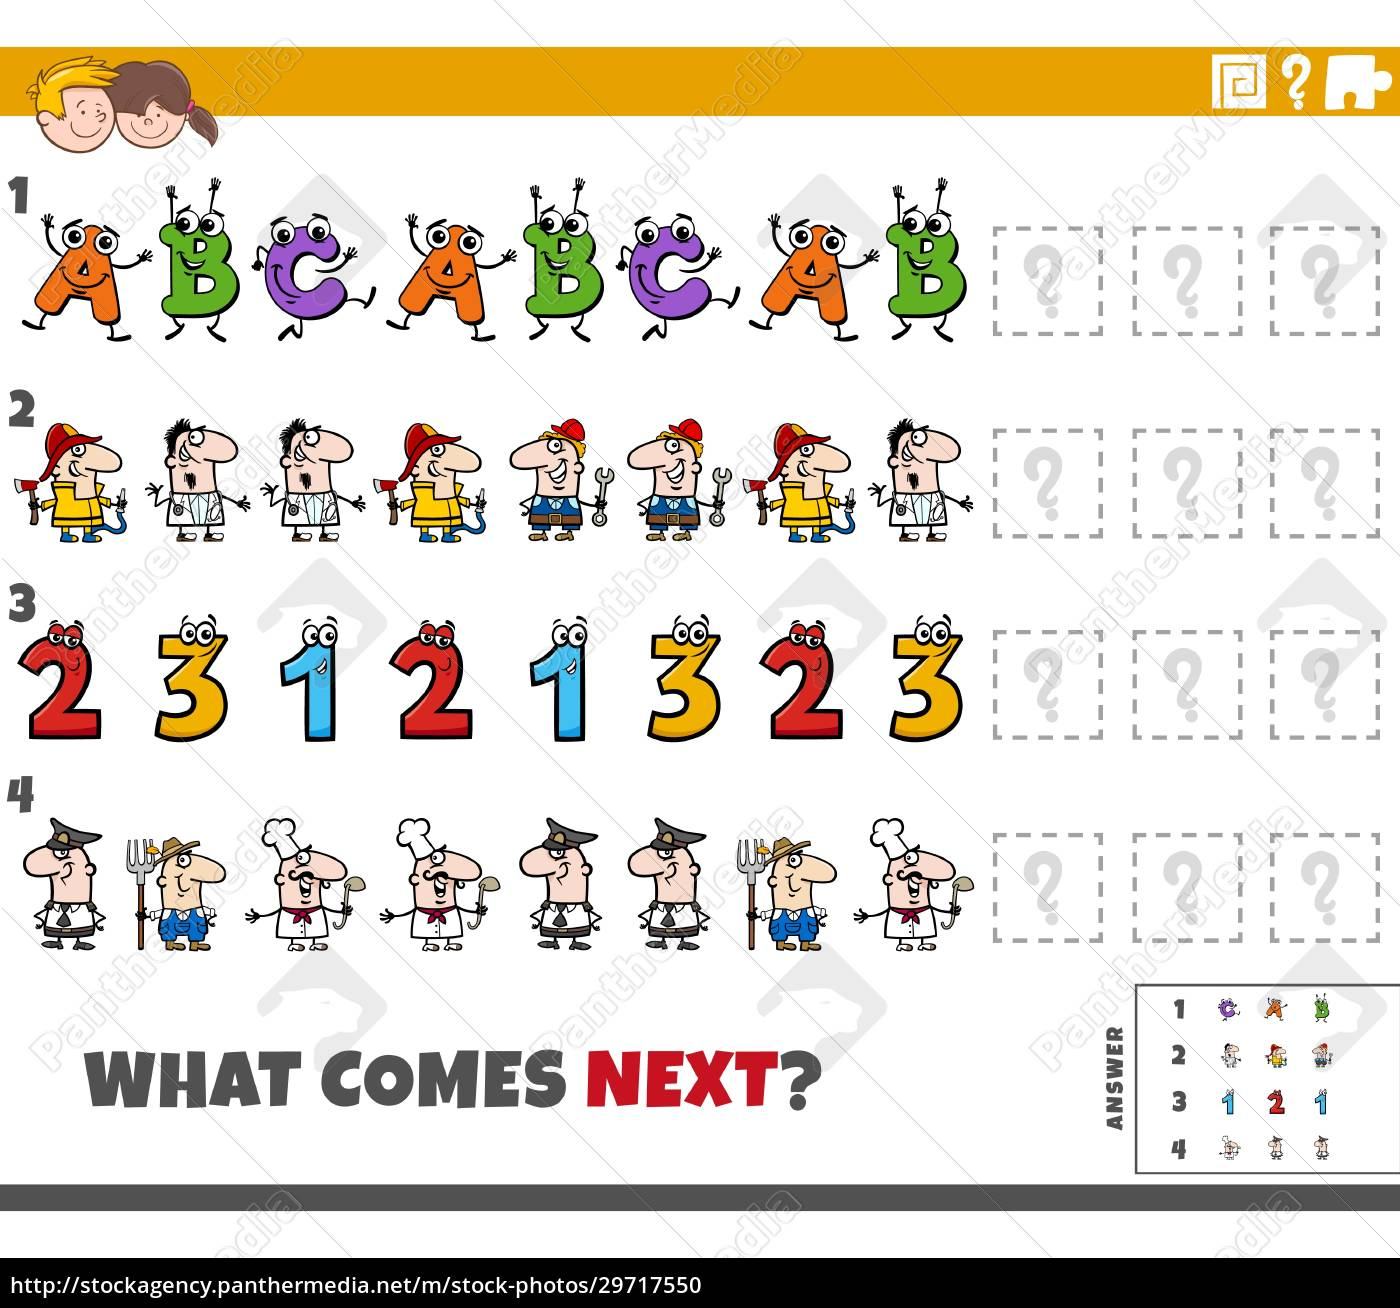 educational, pattern, game, for, children, with - 29717550